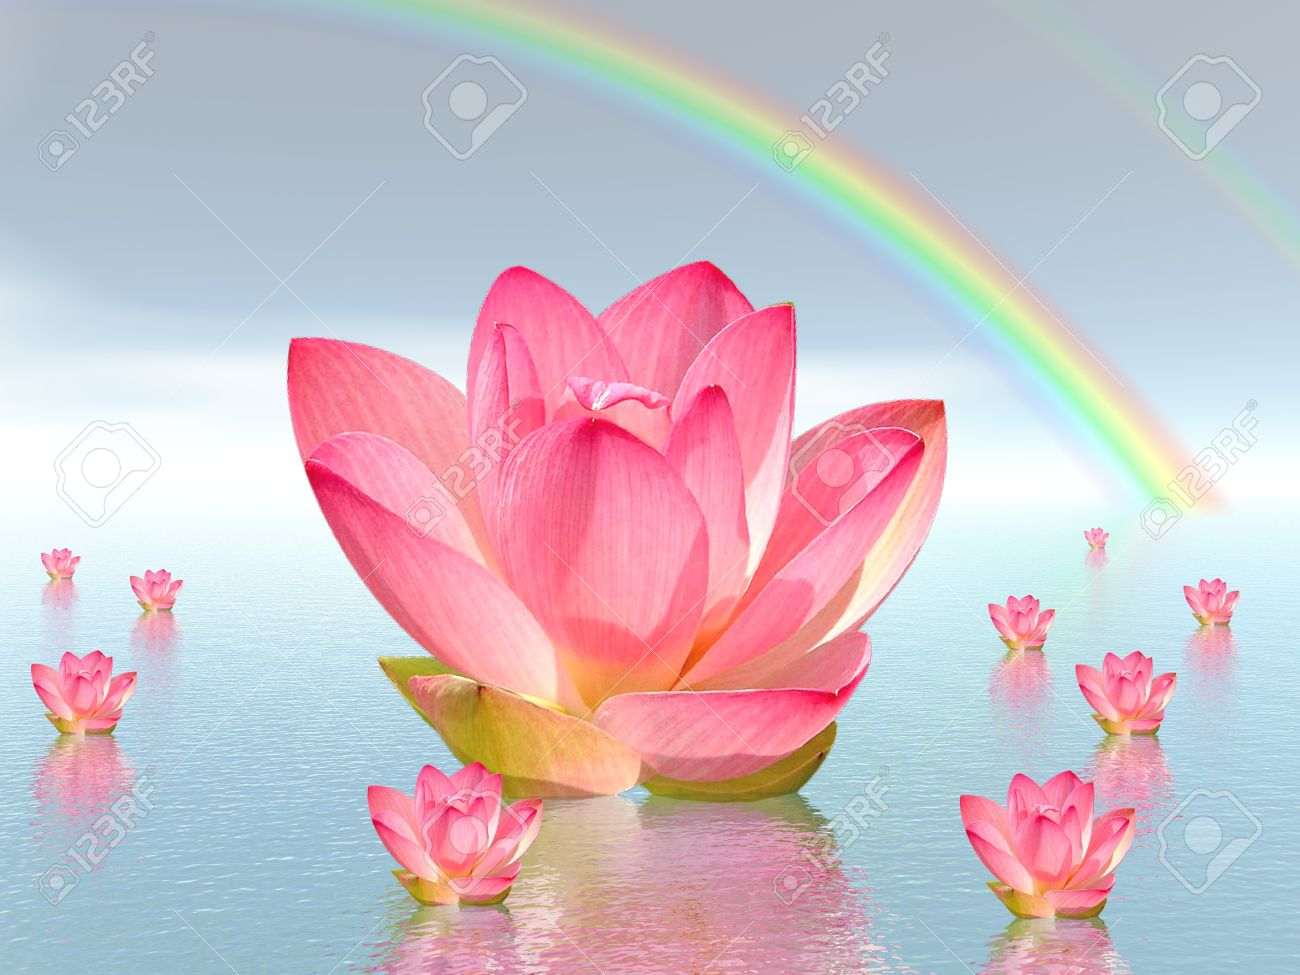 Pink lily flowers on water and under rainbow by beautiful weather Stock Photo - 11266709